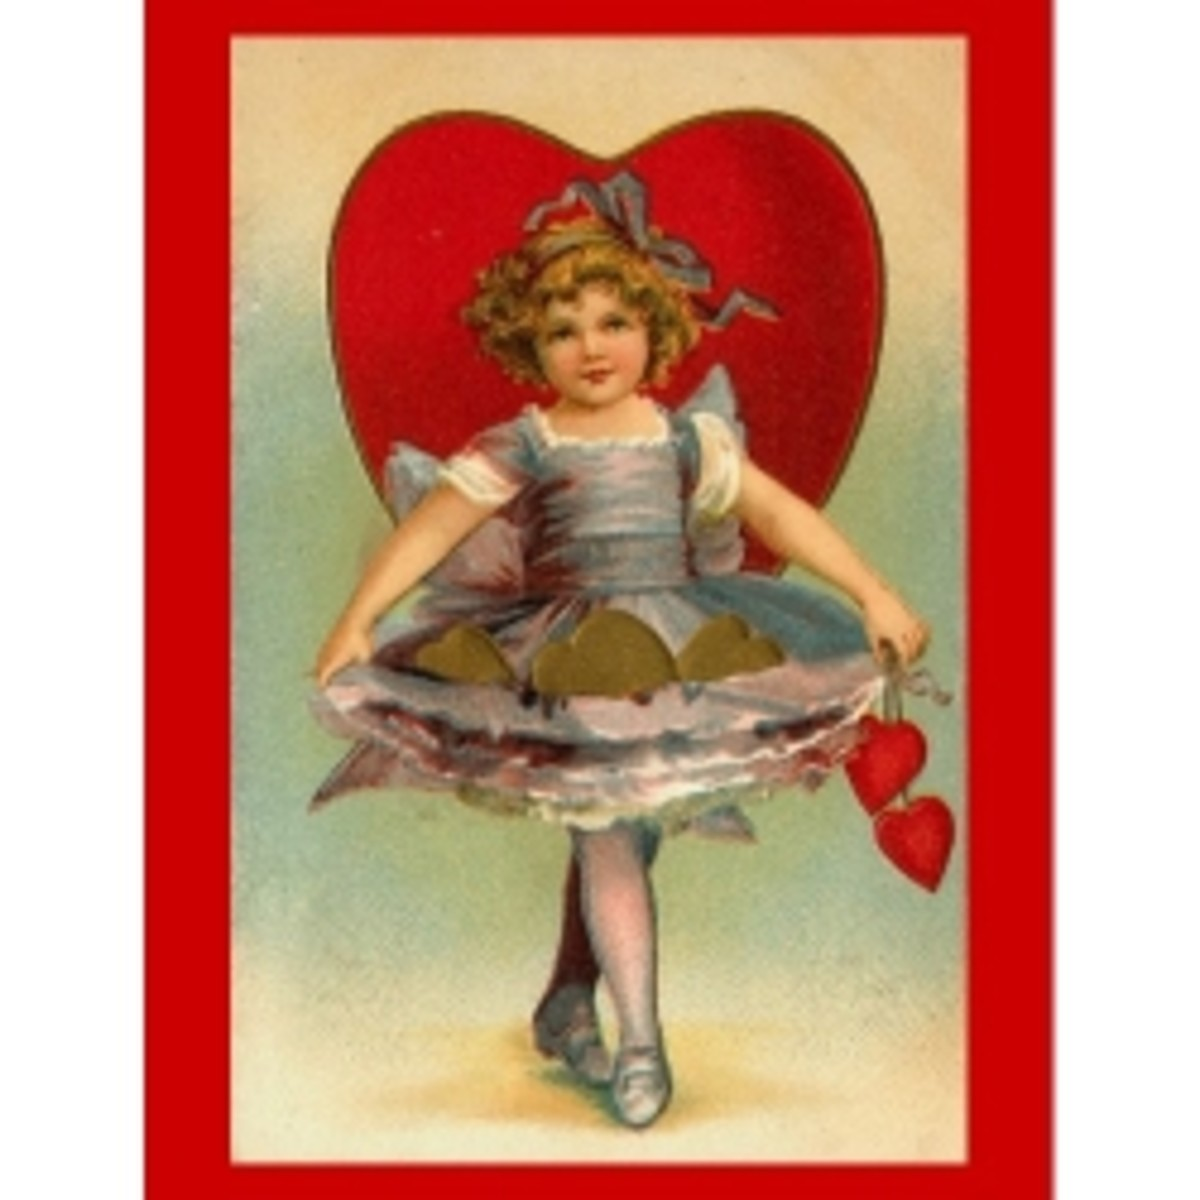 I find the old graphics on valentine's so sweet. A good example is this little girl with her frilly dress.